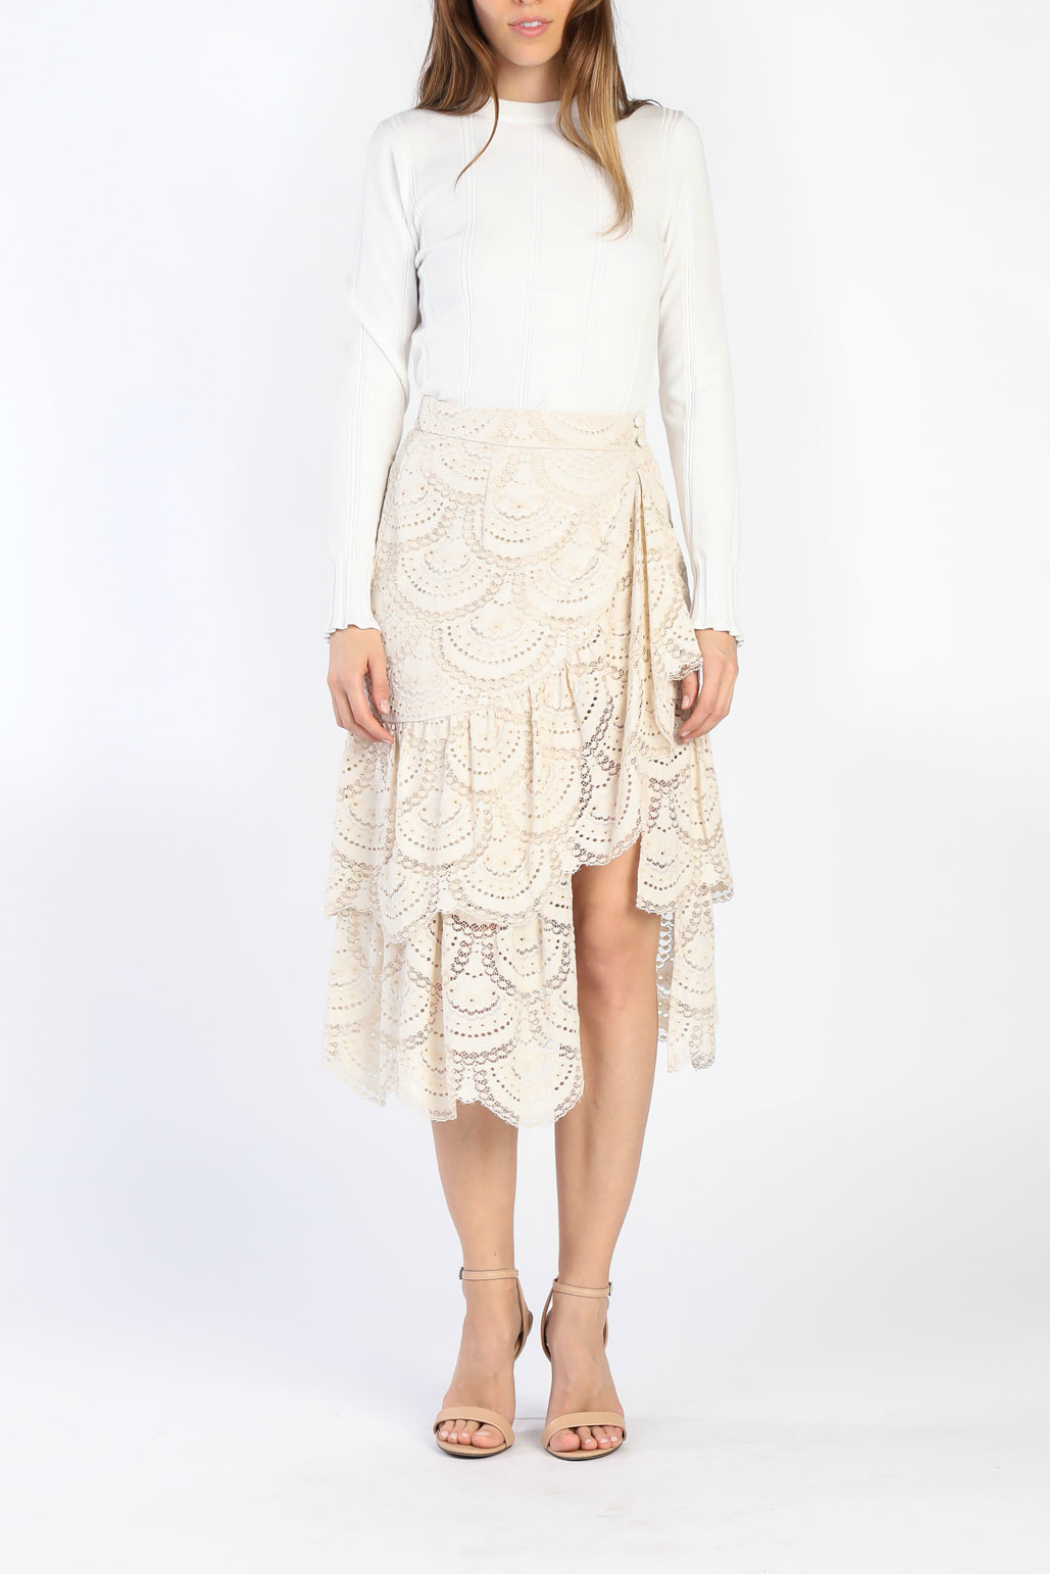 Current Air Tiered Ruffle Lace Skirt - Side Cropped Image